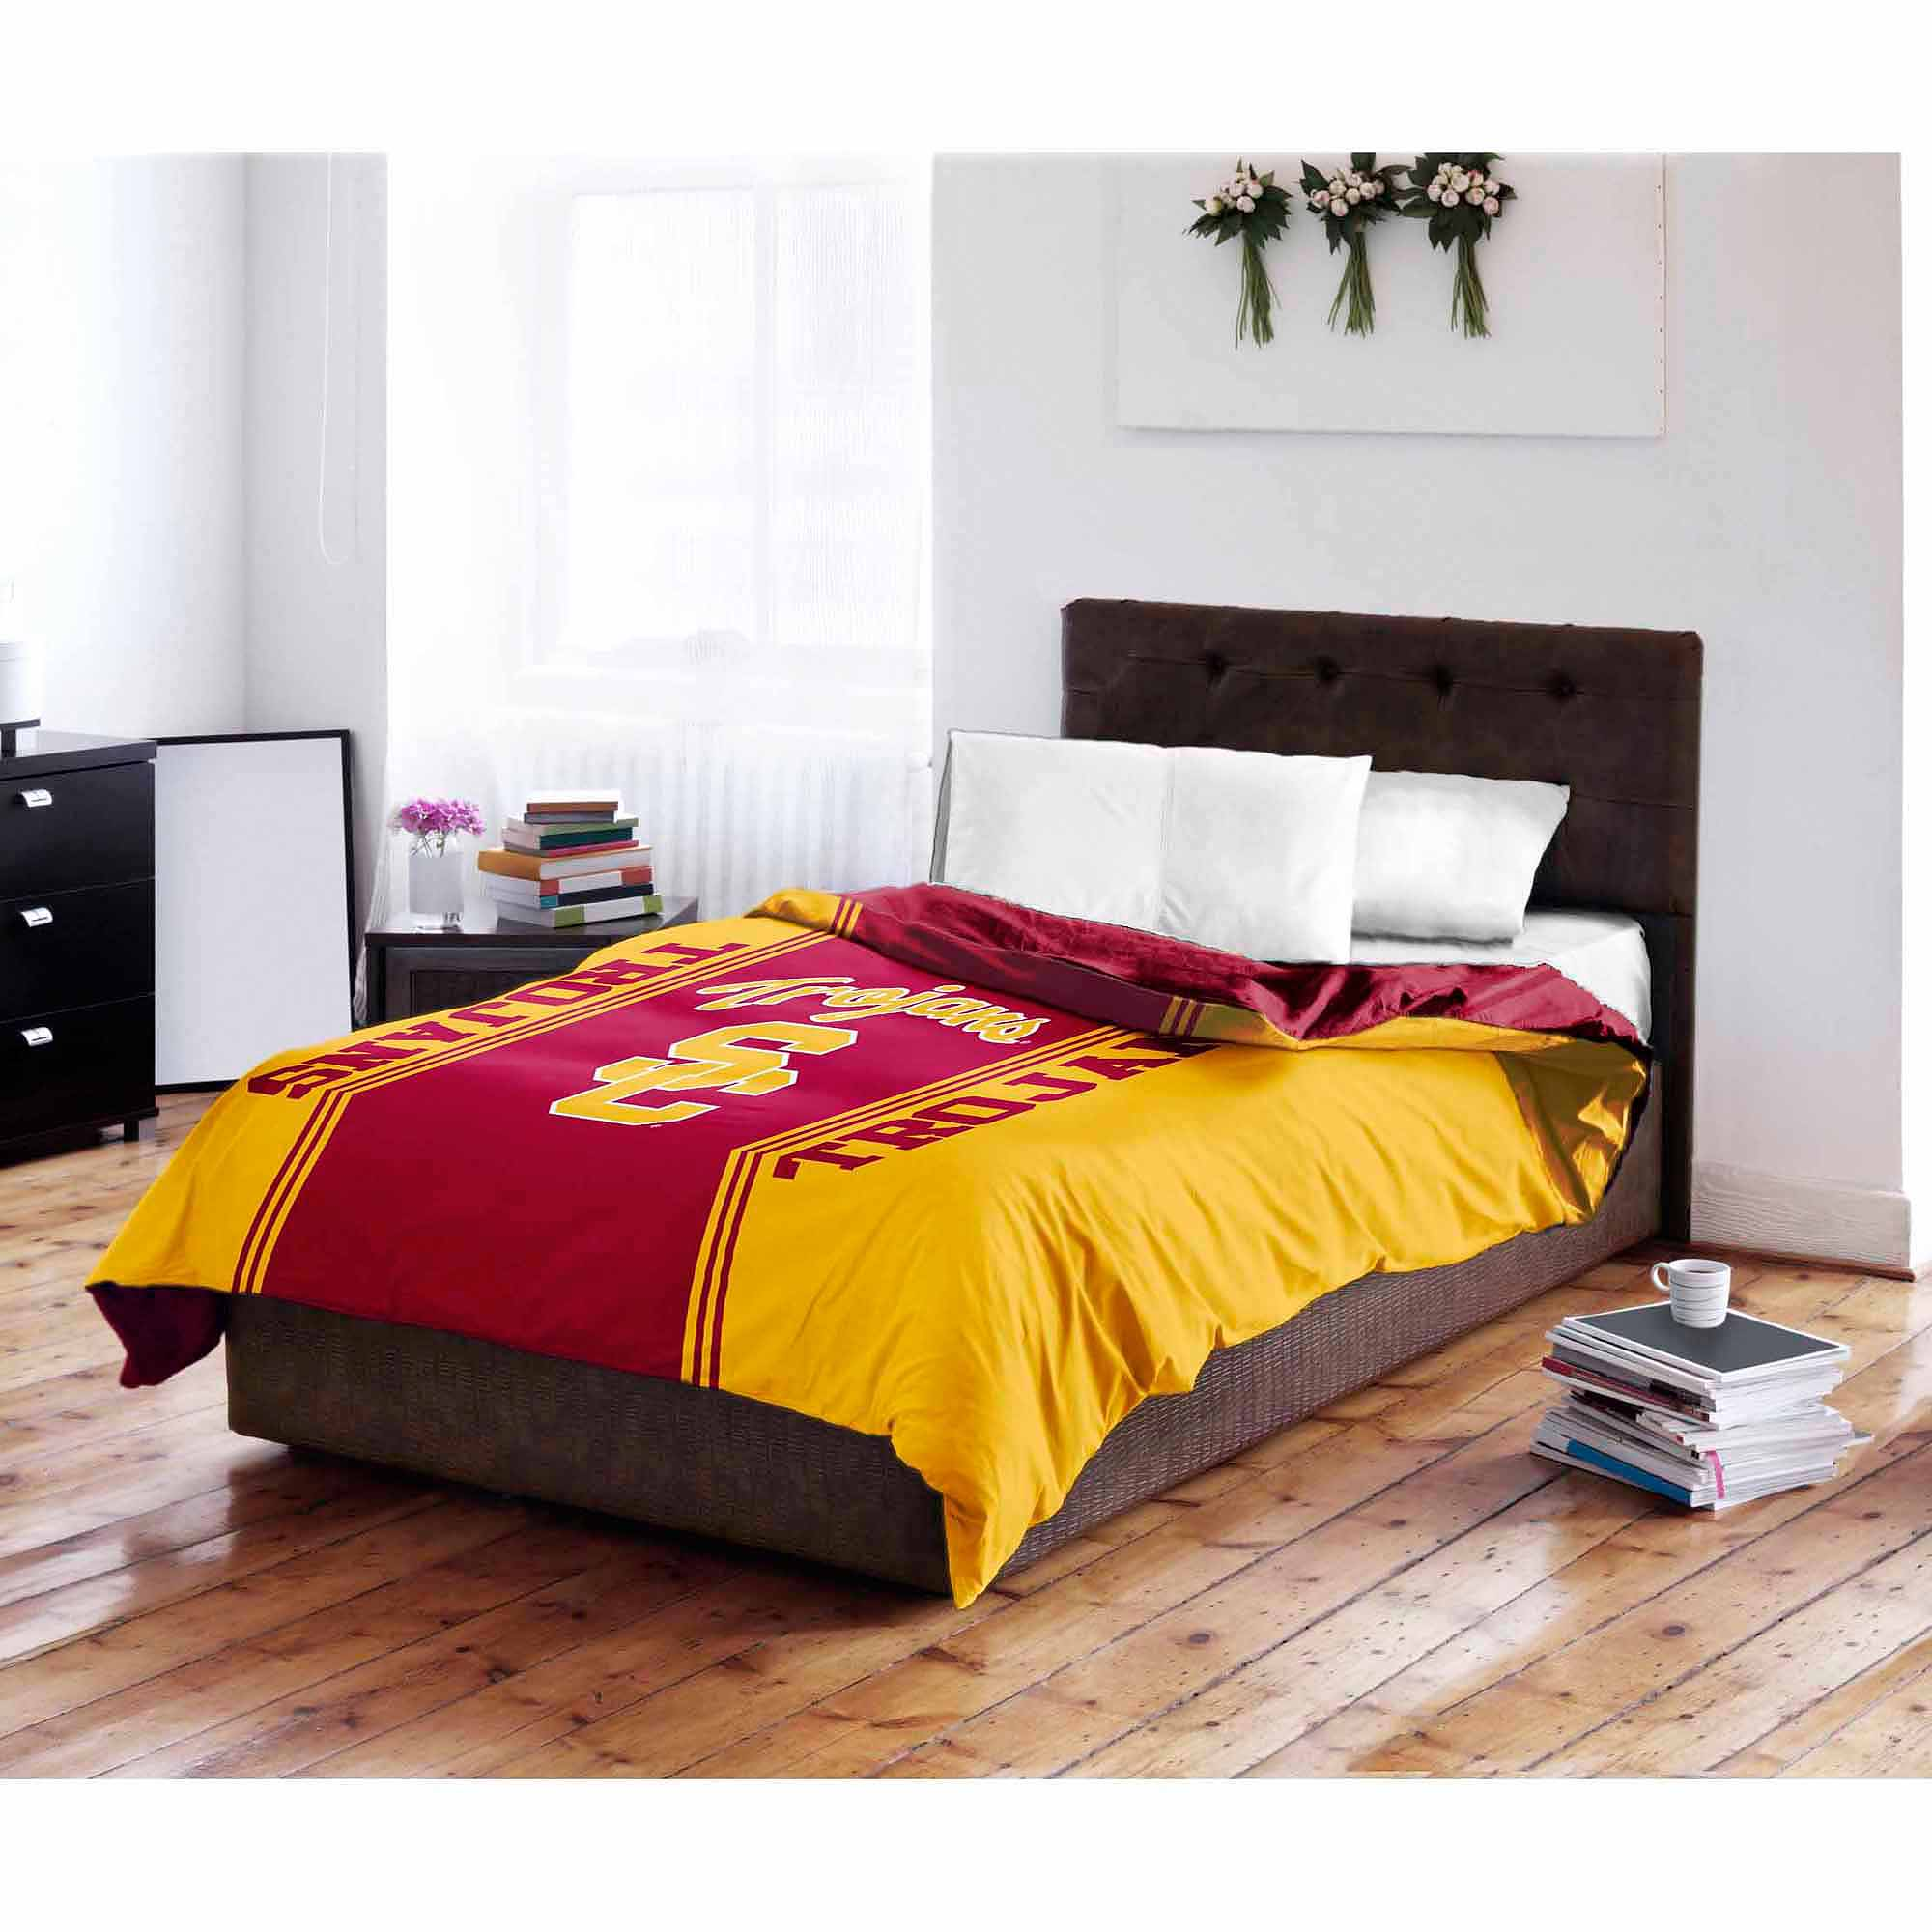 NCAA USC Trojans Twin & Full Bedding Comforter Set, 1 Each